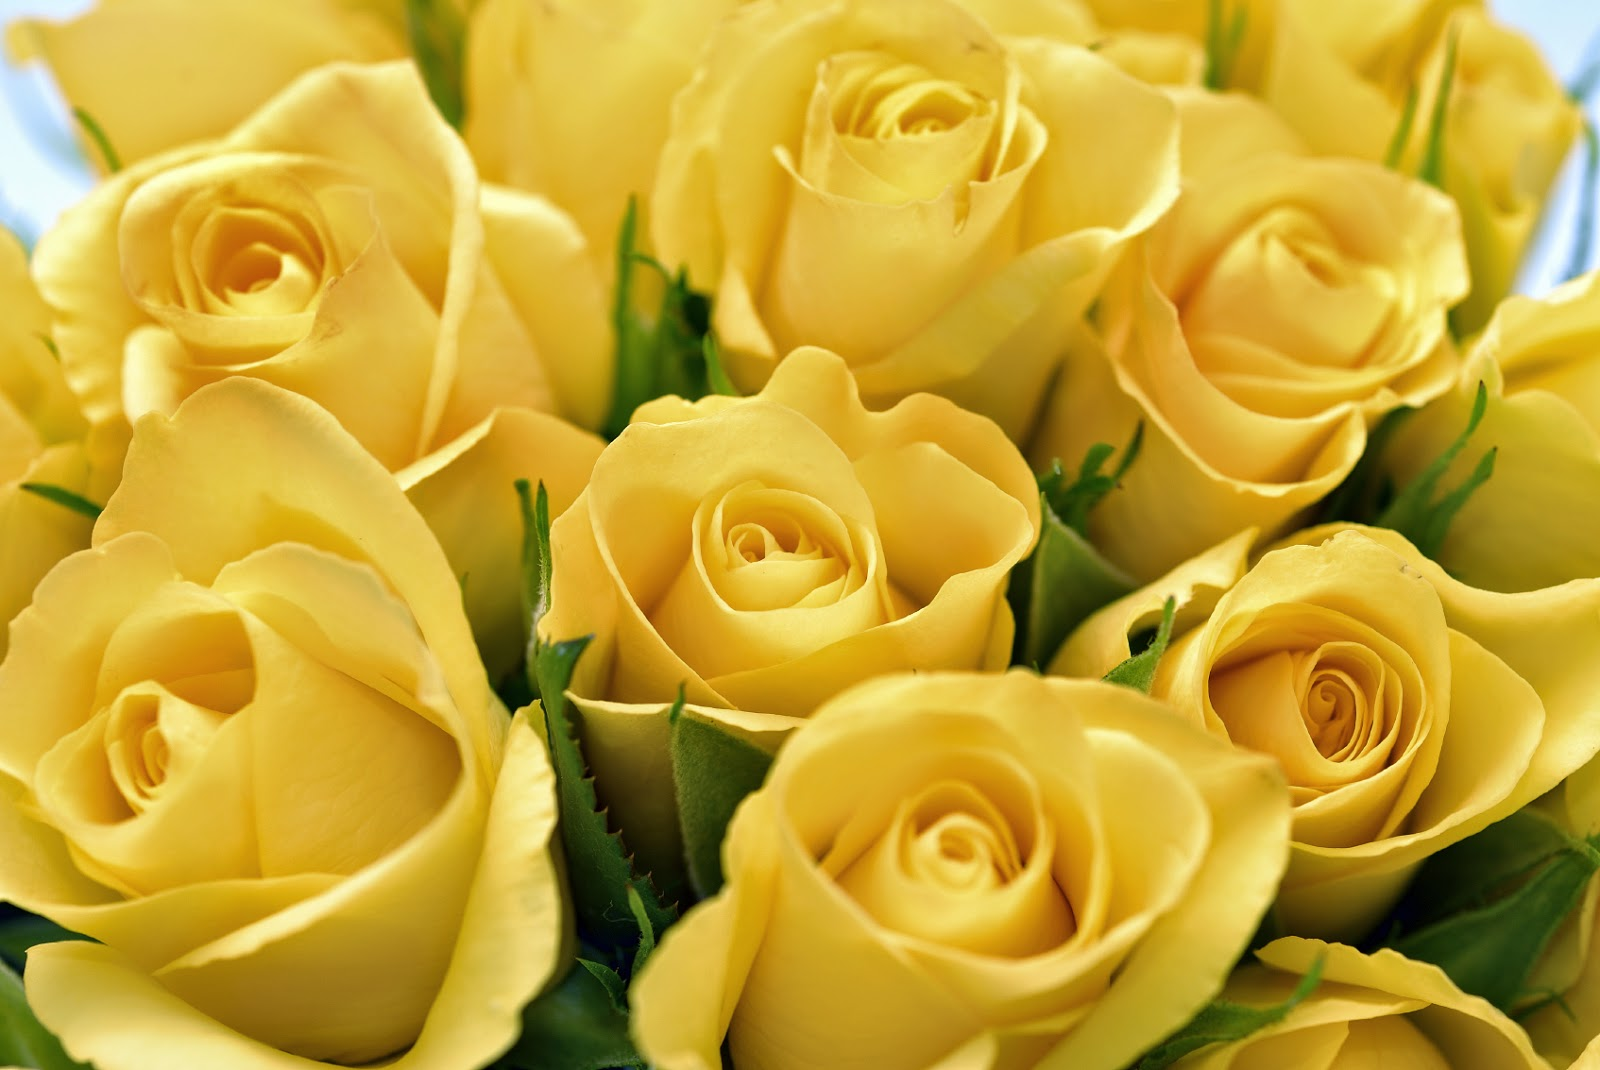 Yellow rose yellow rose meaning yellow roses - Yellow Rose Nas In Memory Of My Mom